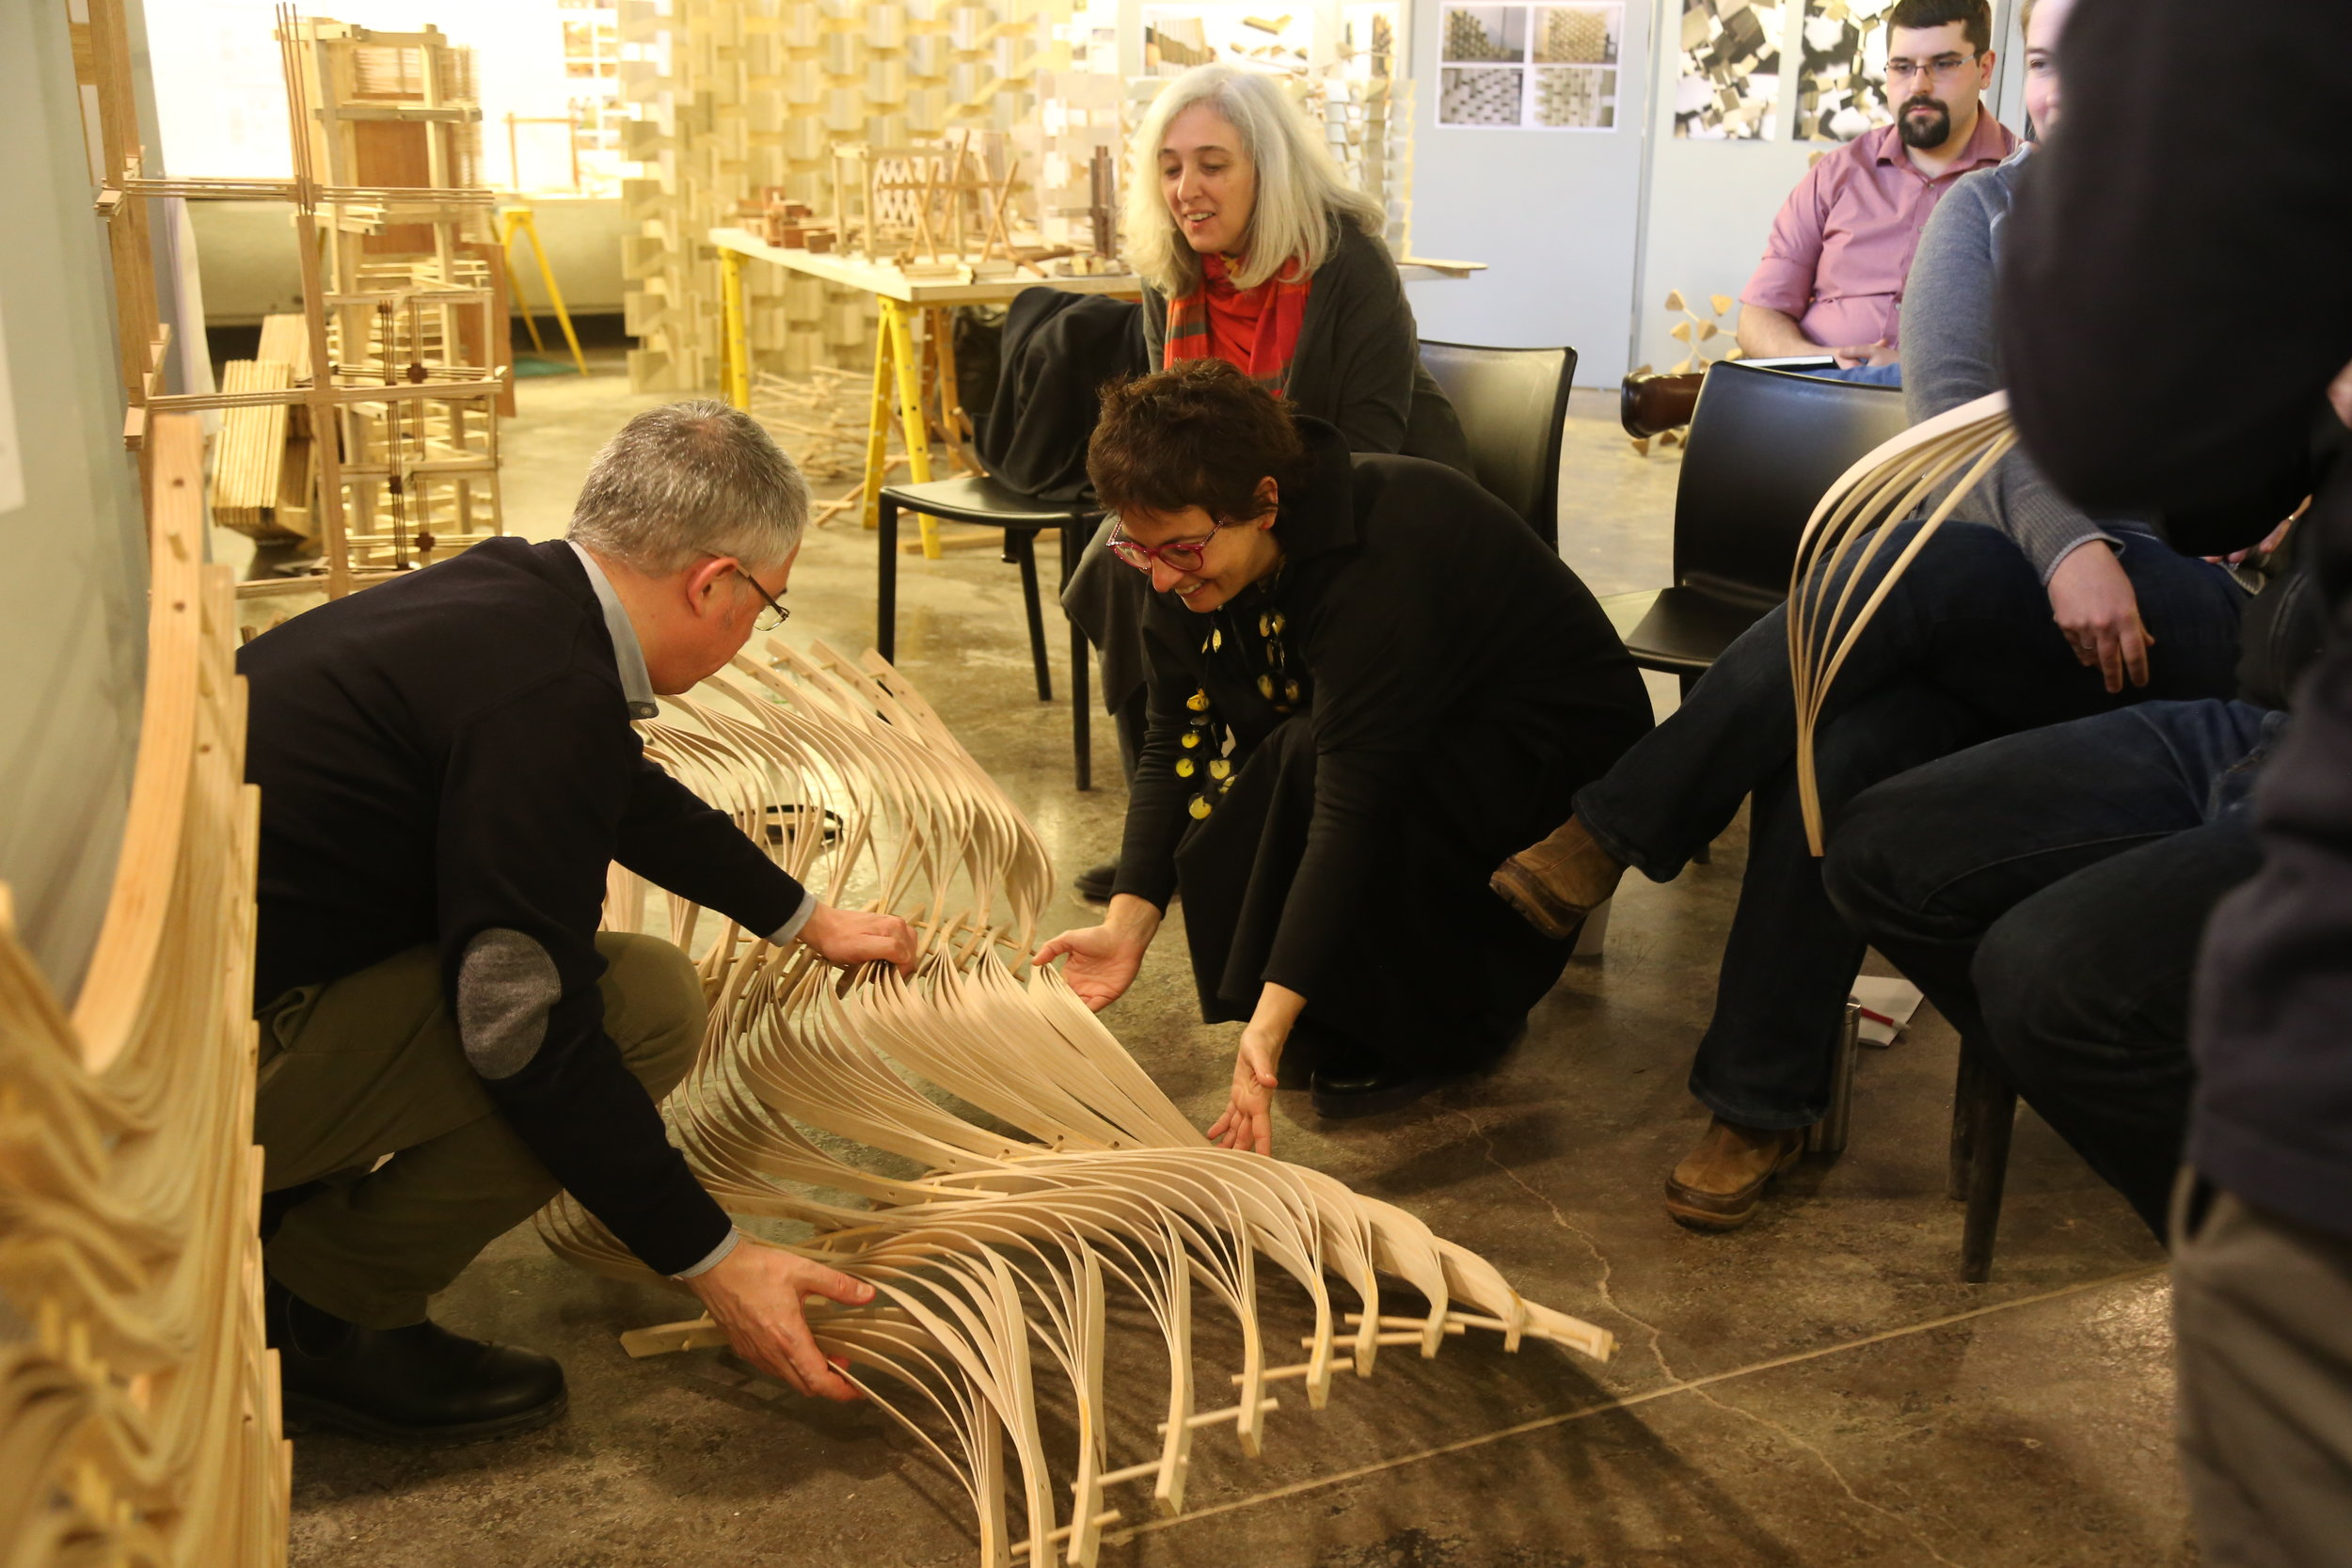 Material Culture Graduate Research Group Midterm Review. Cages. Prof. Miguel Guitart. University at Buffalo. With Clara Solà-Morales, Laura Garófalo-Khan, Christopher Romano, and Stephanie Cramer. April 4, 2018. Photograph by Maryanne Schultz for B/a+p.